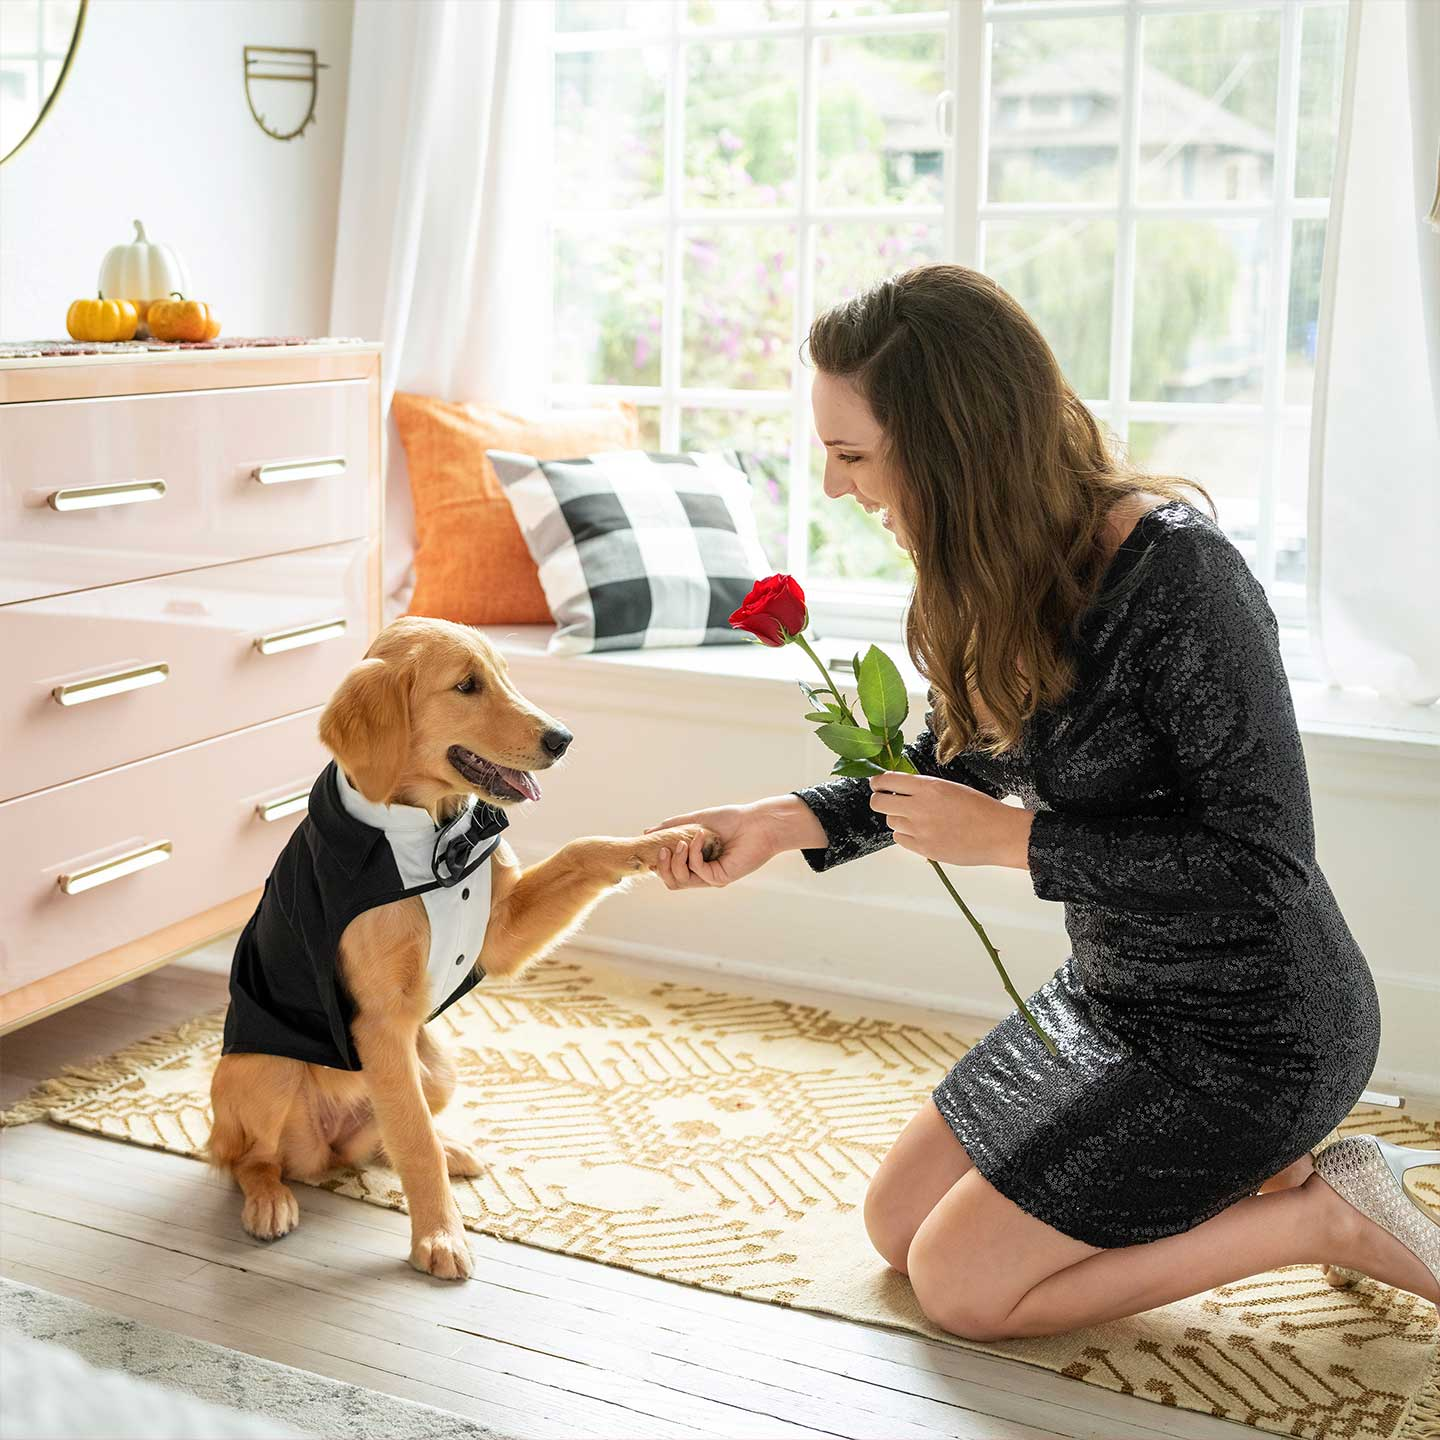 Dog dressed in a tux as the Bachelor shakes paw with woman holding a rose, dressed as a Bachelorette.